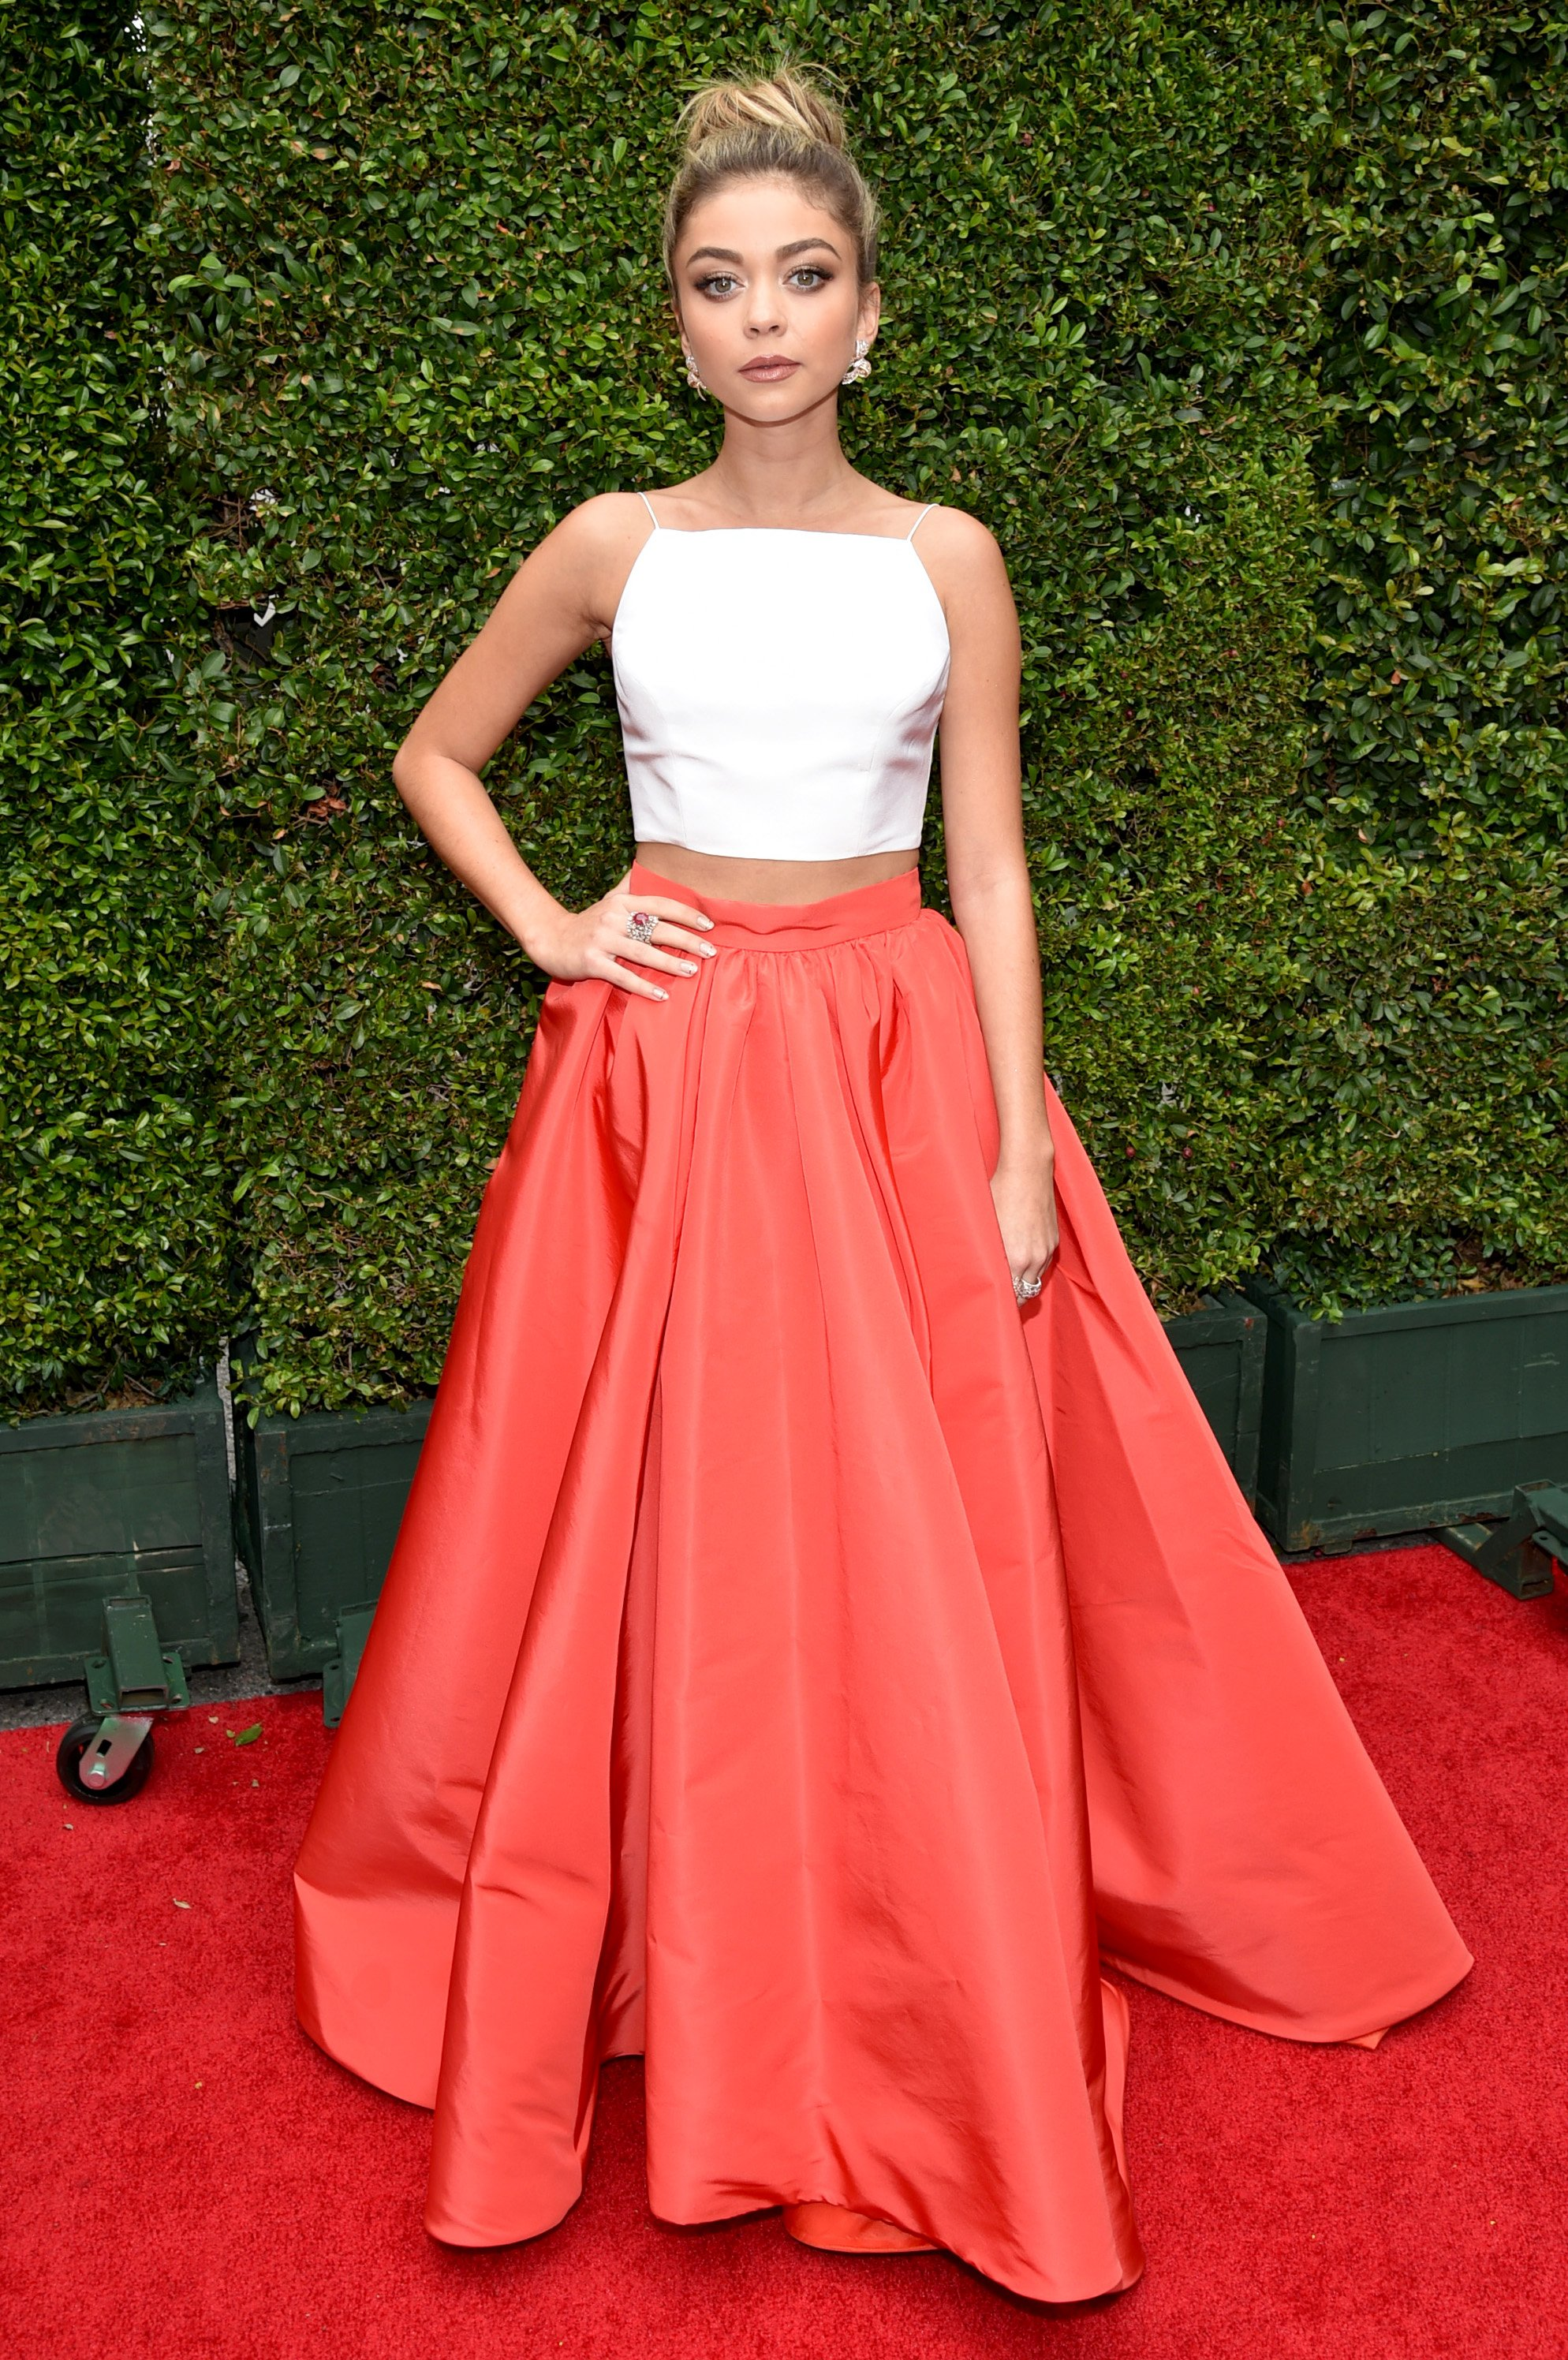 Sarah Hyland arrives at the 66th Primetime Emmy Awards at the Nokia Theatre L.A. Live on Monday, Aug. 25, 2014, in Los Angeles.